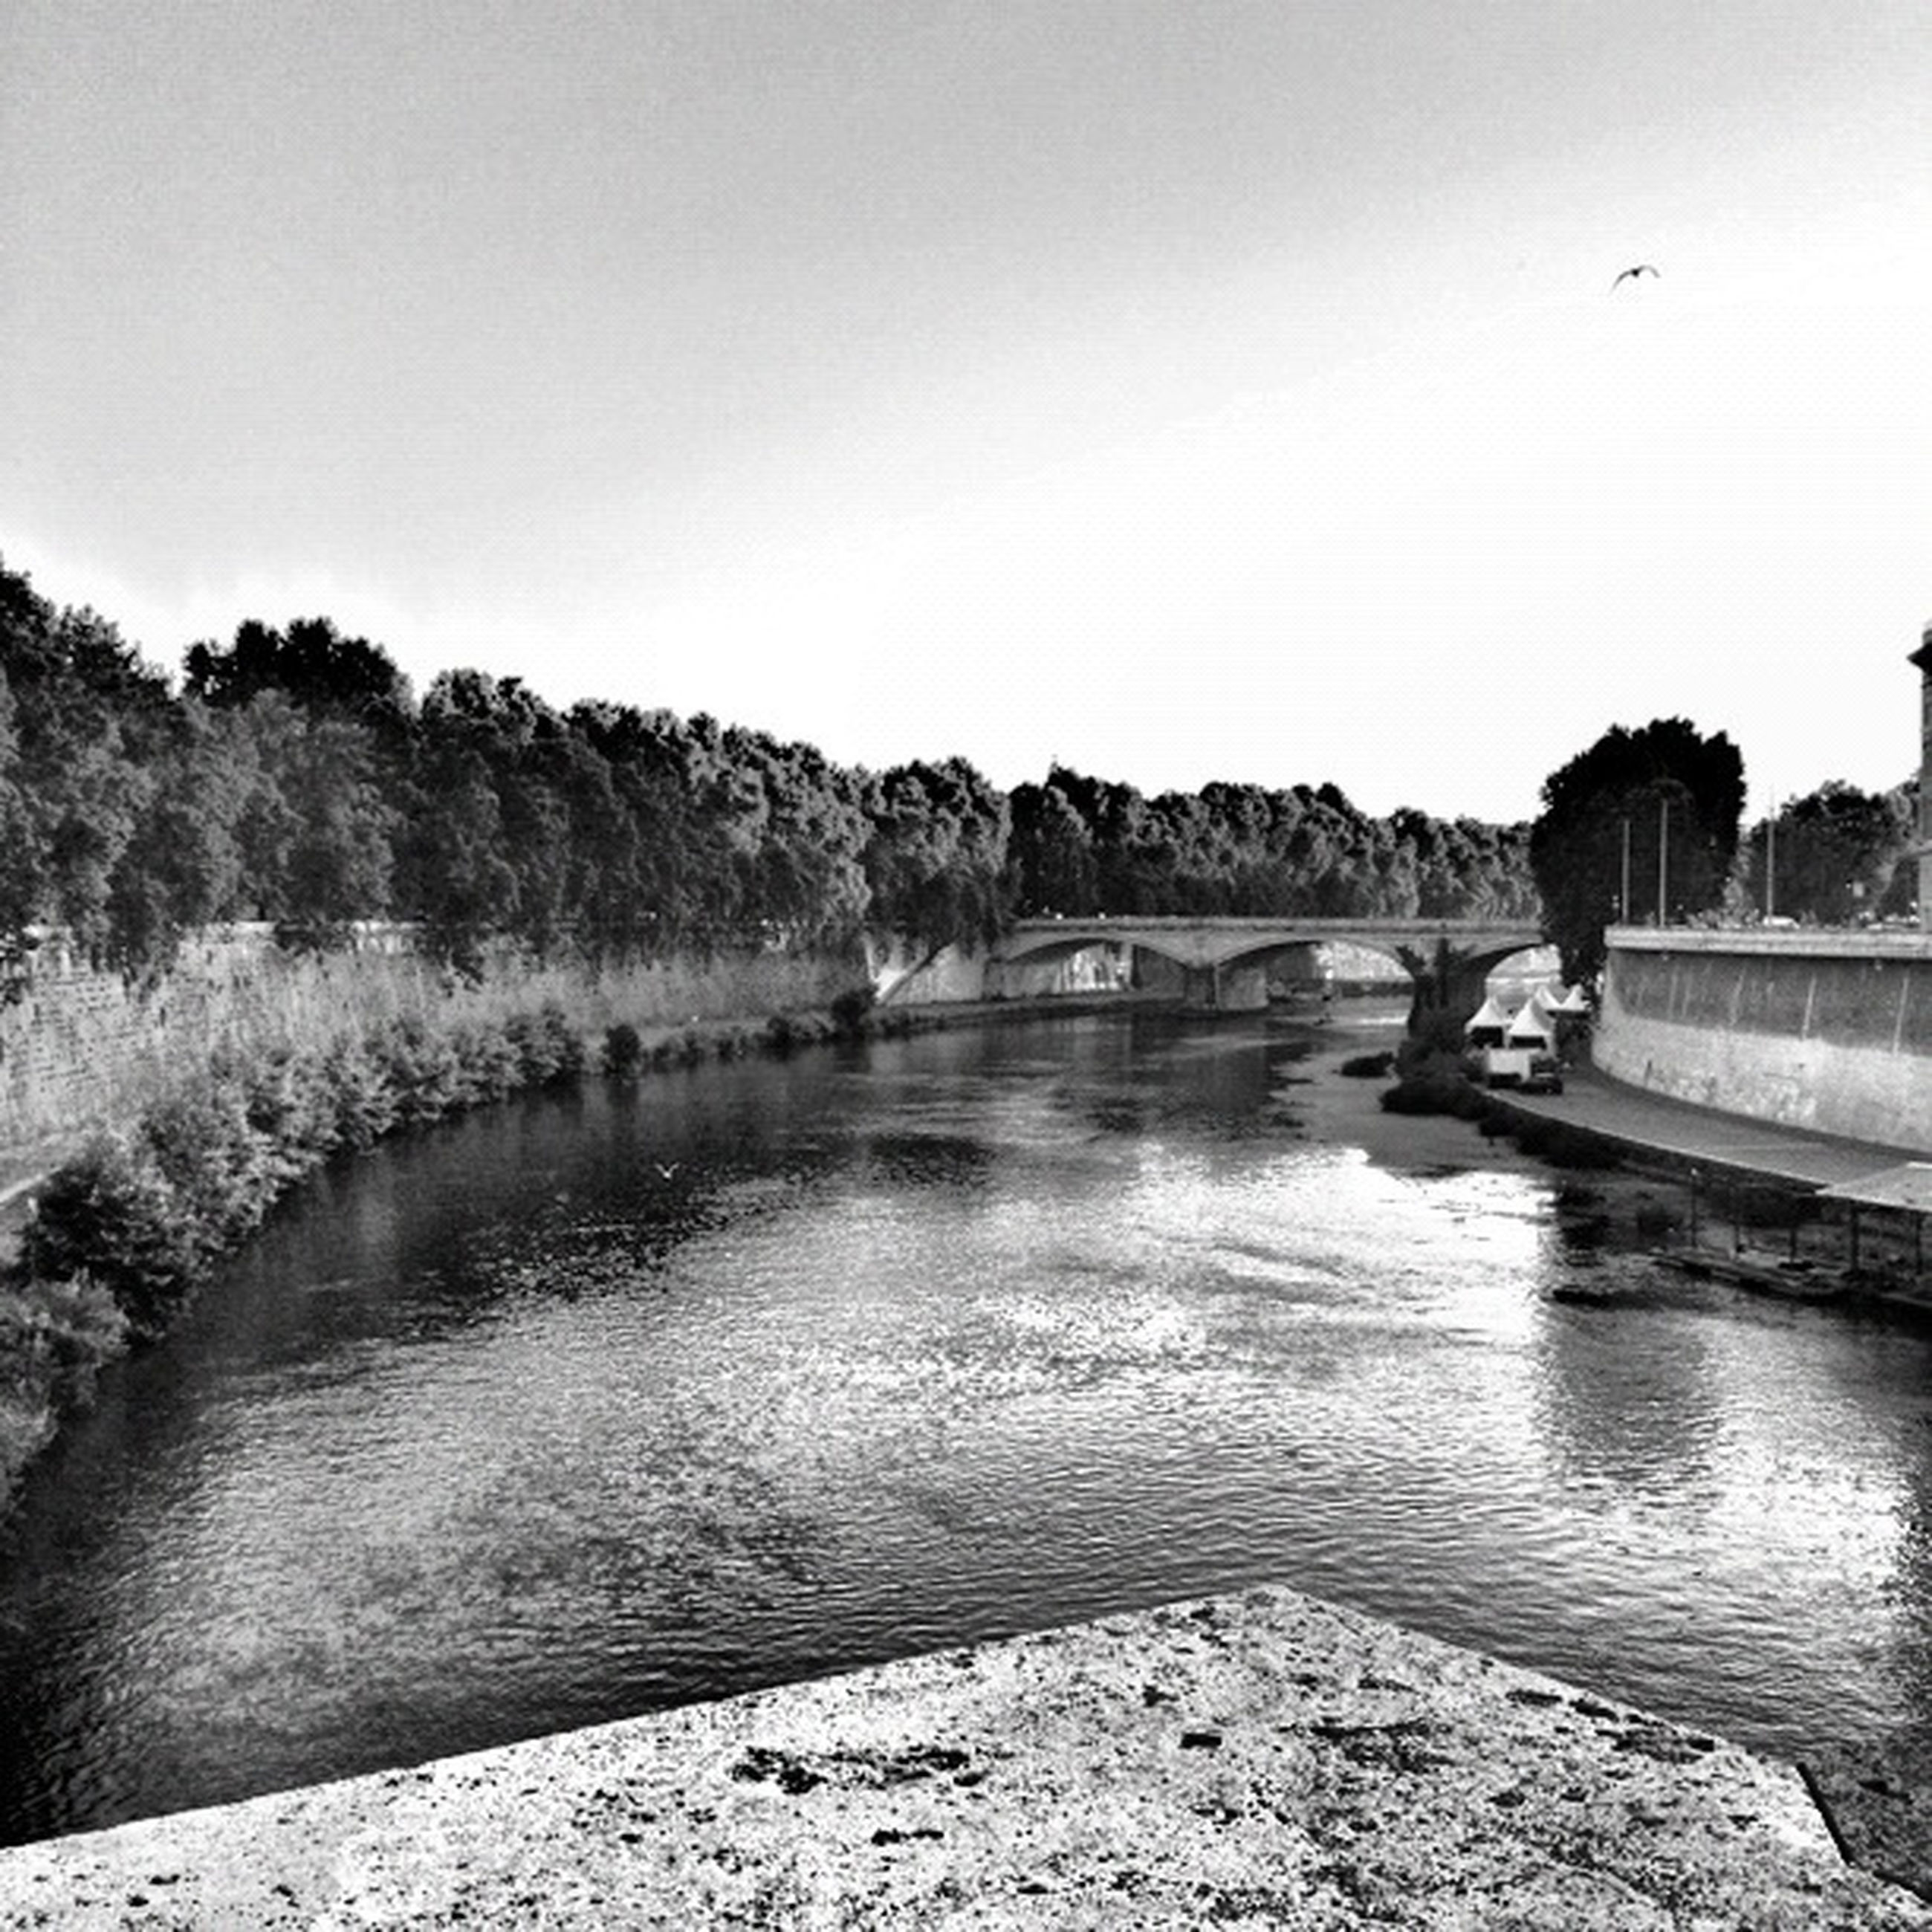 water, clear sky, river, bridge - man made structure, tranquil scene, tranquility, tree, built structure, copy space, connection, scenics, nature, lake, architecture, beauty in nature, reflection, sky, transportation, rock - object, bridge